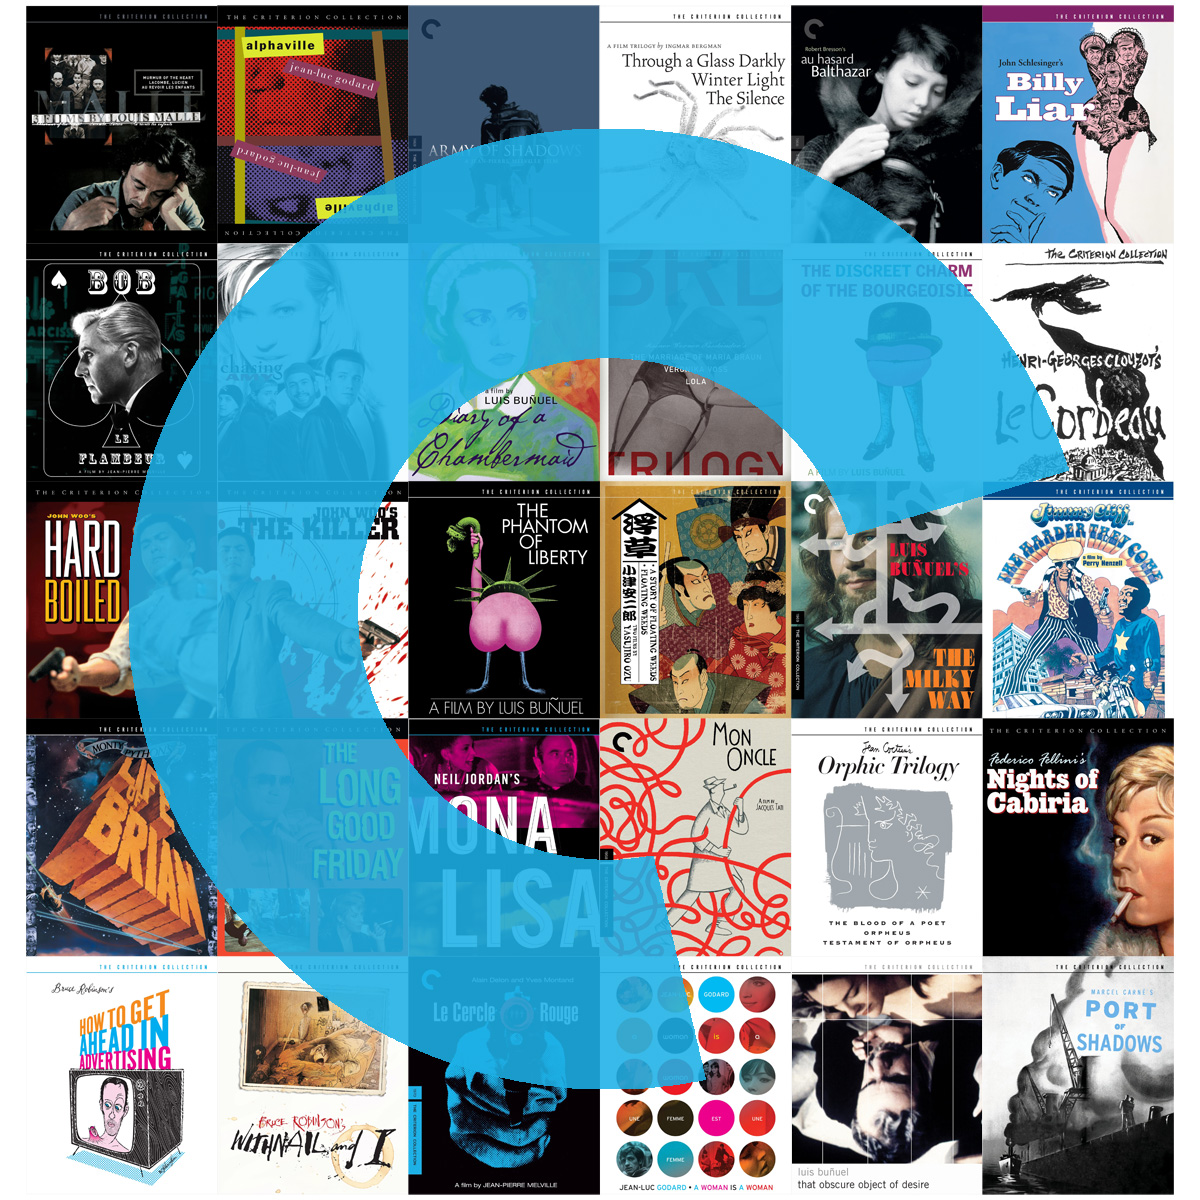 criterion collection pop-up shop | gallery 30 south